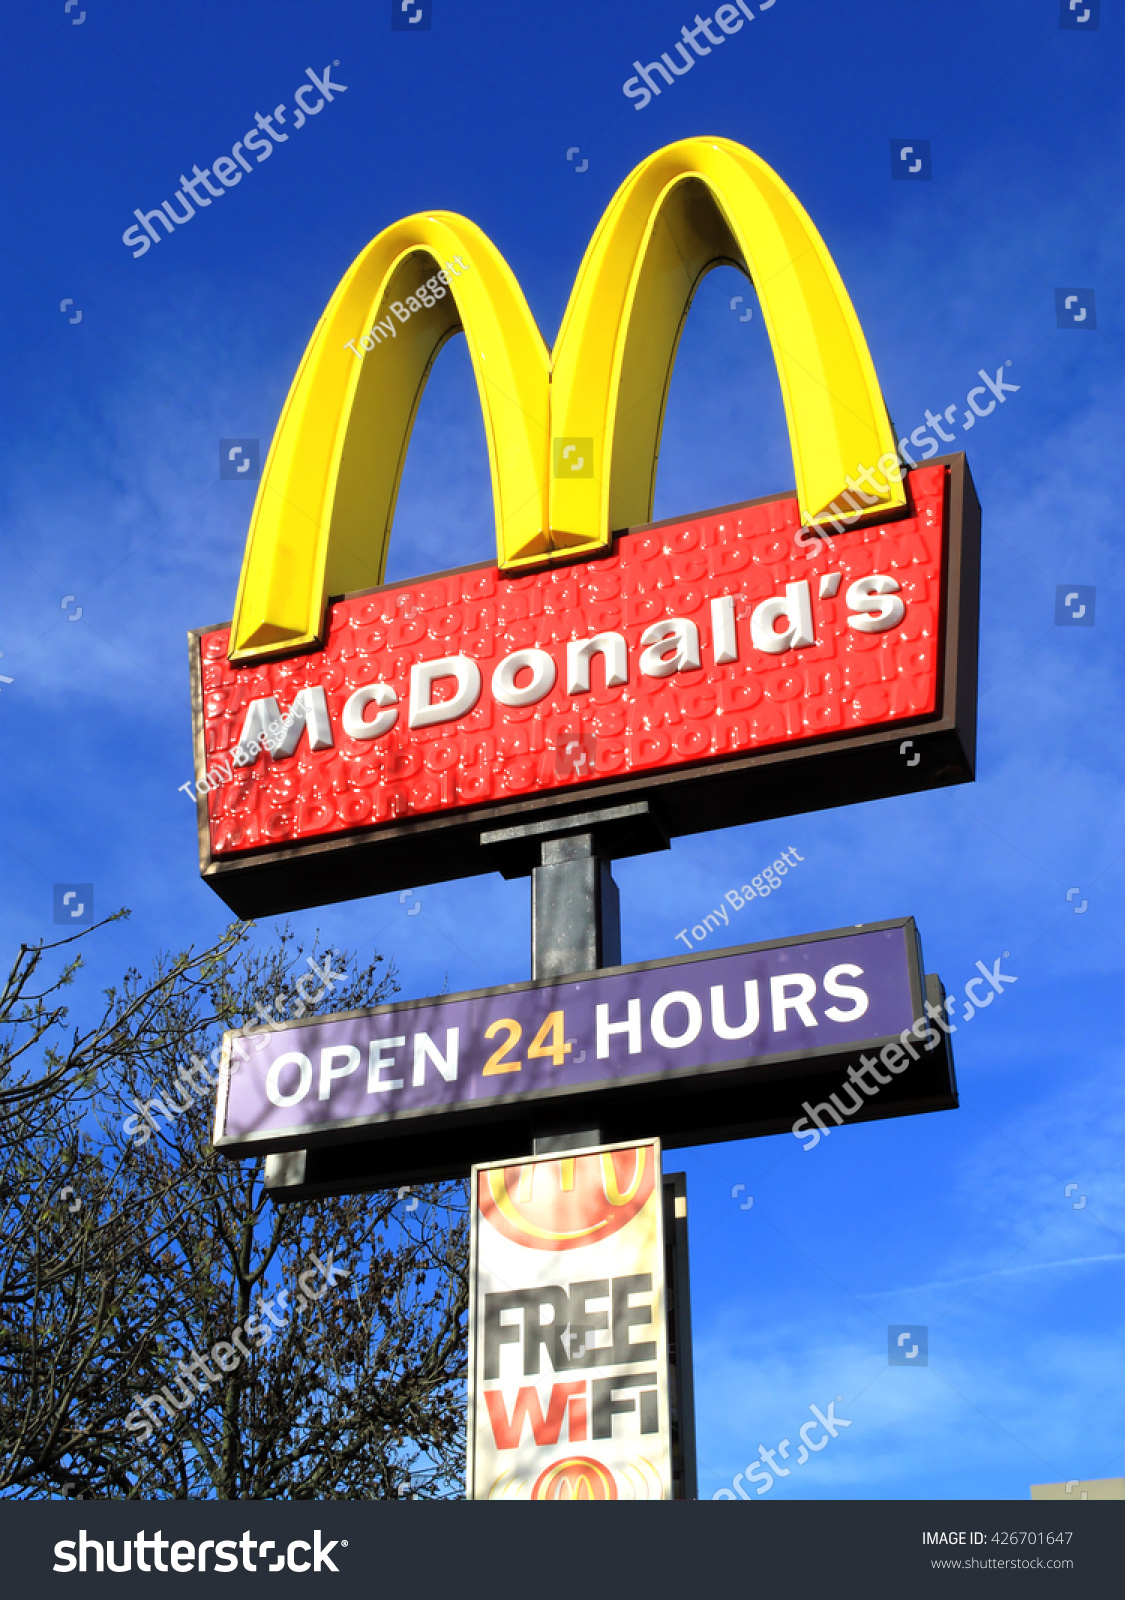 London Uk April 6 2011 Mcdonalds Stock Photo 426701647. Bmi For Gastric Bypass E Mini Futures Brokers. North Dallas Chiropractic Online Cloud Backup. Numbers Timesheet Template Honda Crv Seattle. Treatment For Oxycodone Addiction. Best Accounting Software For Self Employed. Dish Network Adult Programming. How To Invest Ten Thousand Dollars. Lean Six Sigma Certification Programs